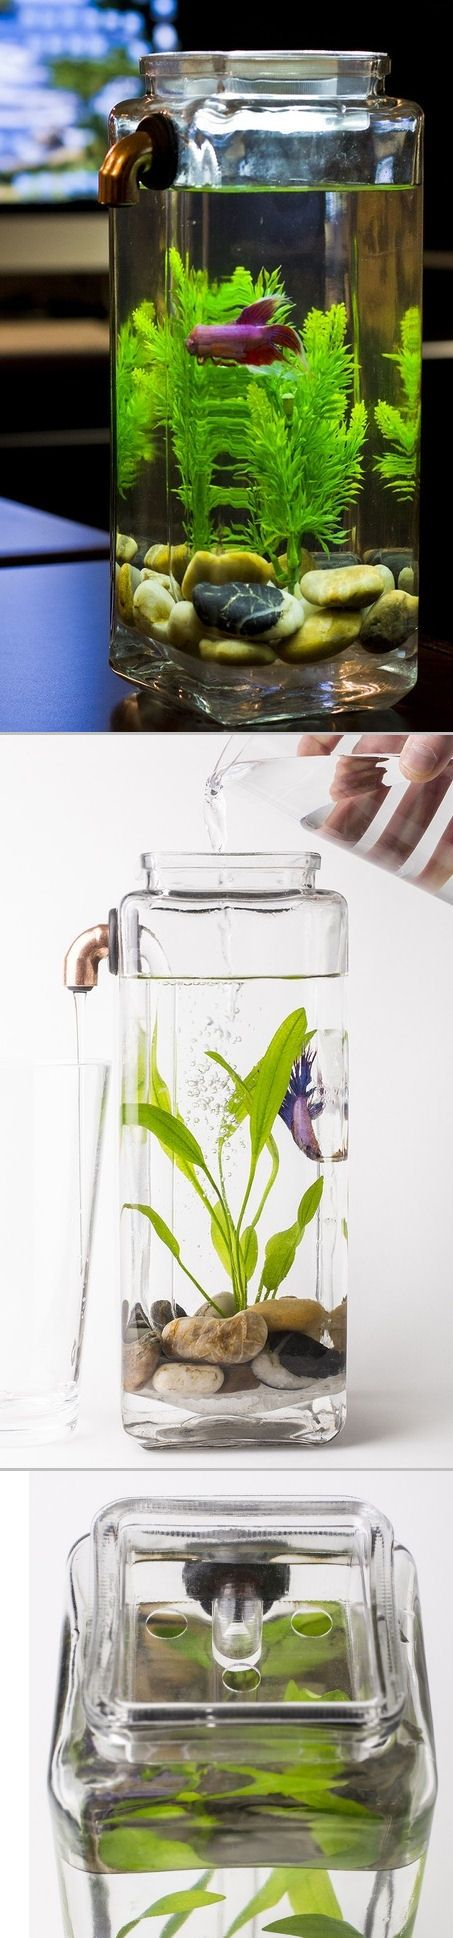 17 best images about betta fish and tanks on pinterest for Best way to clean a fish tank